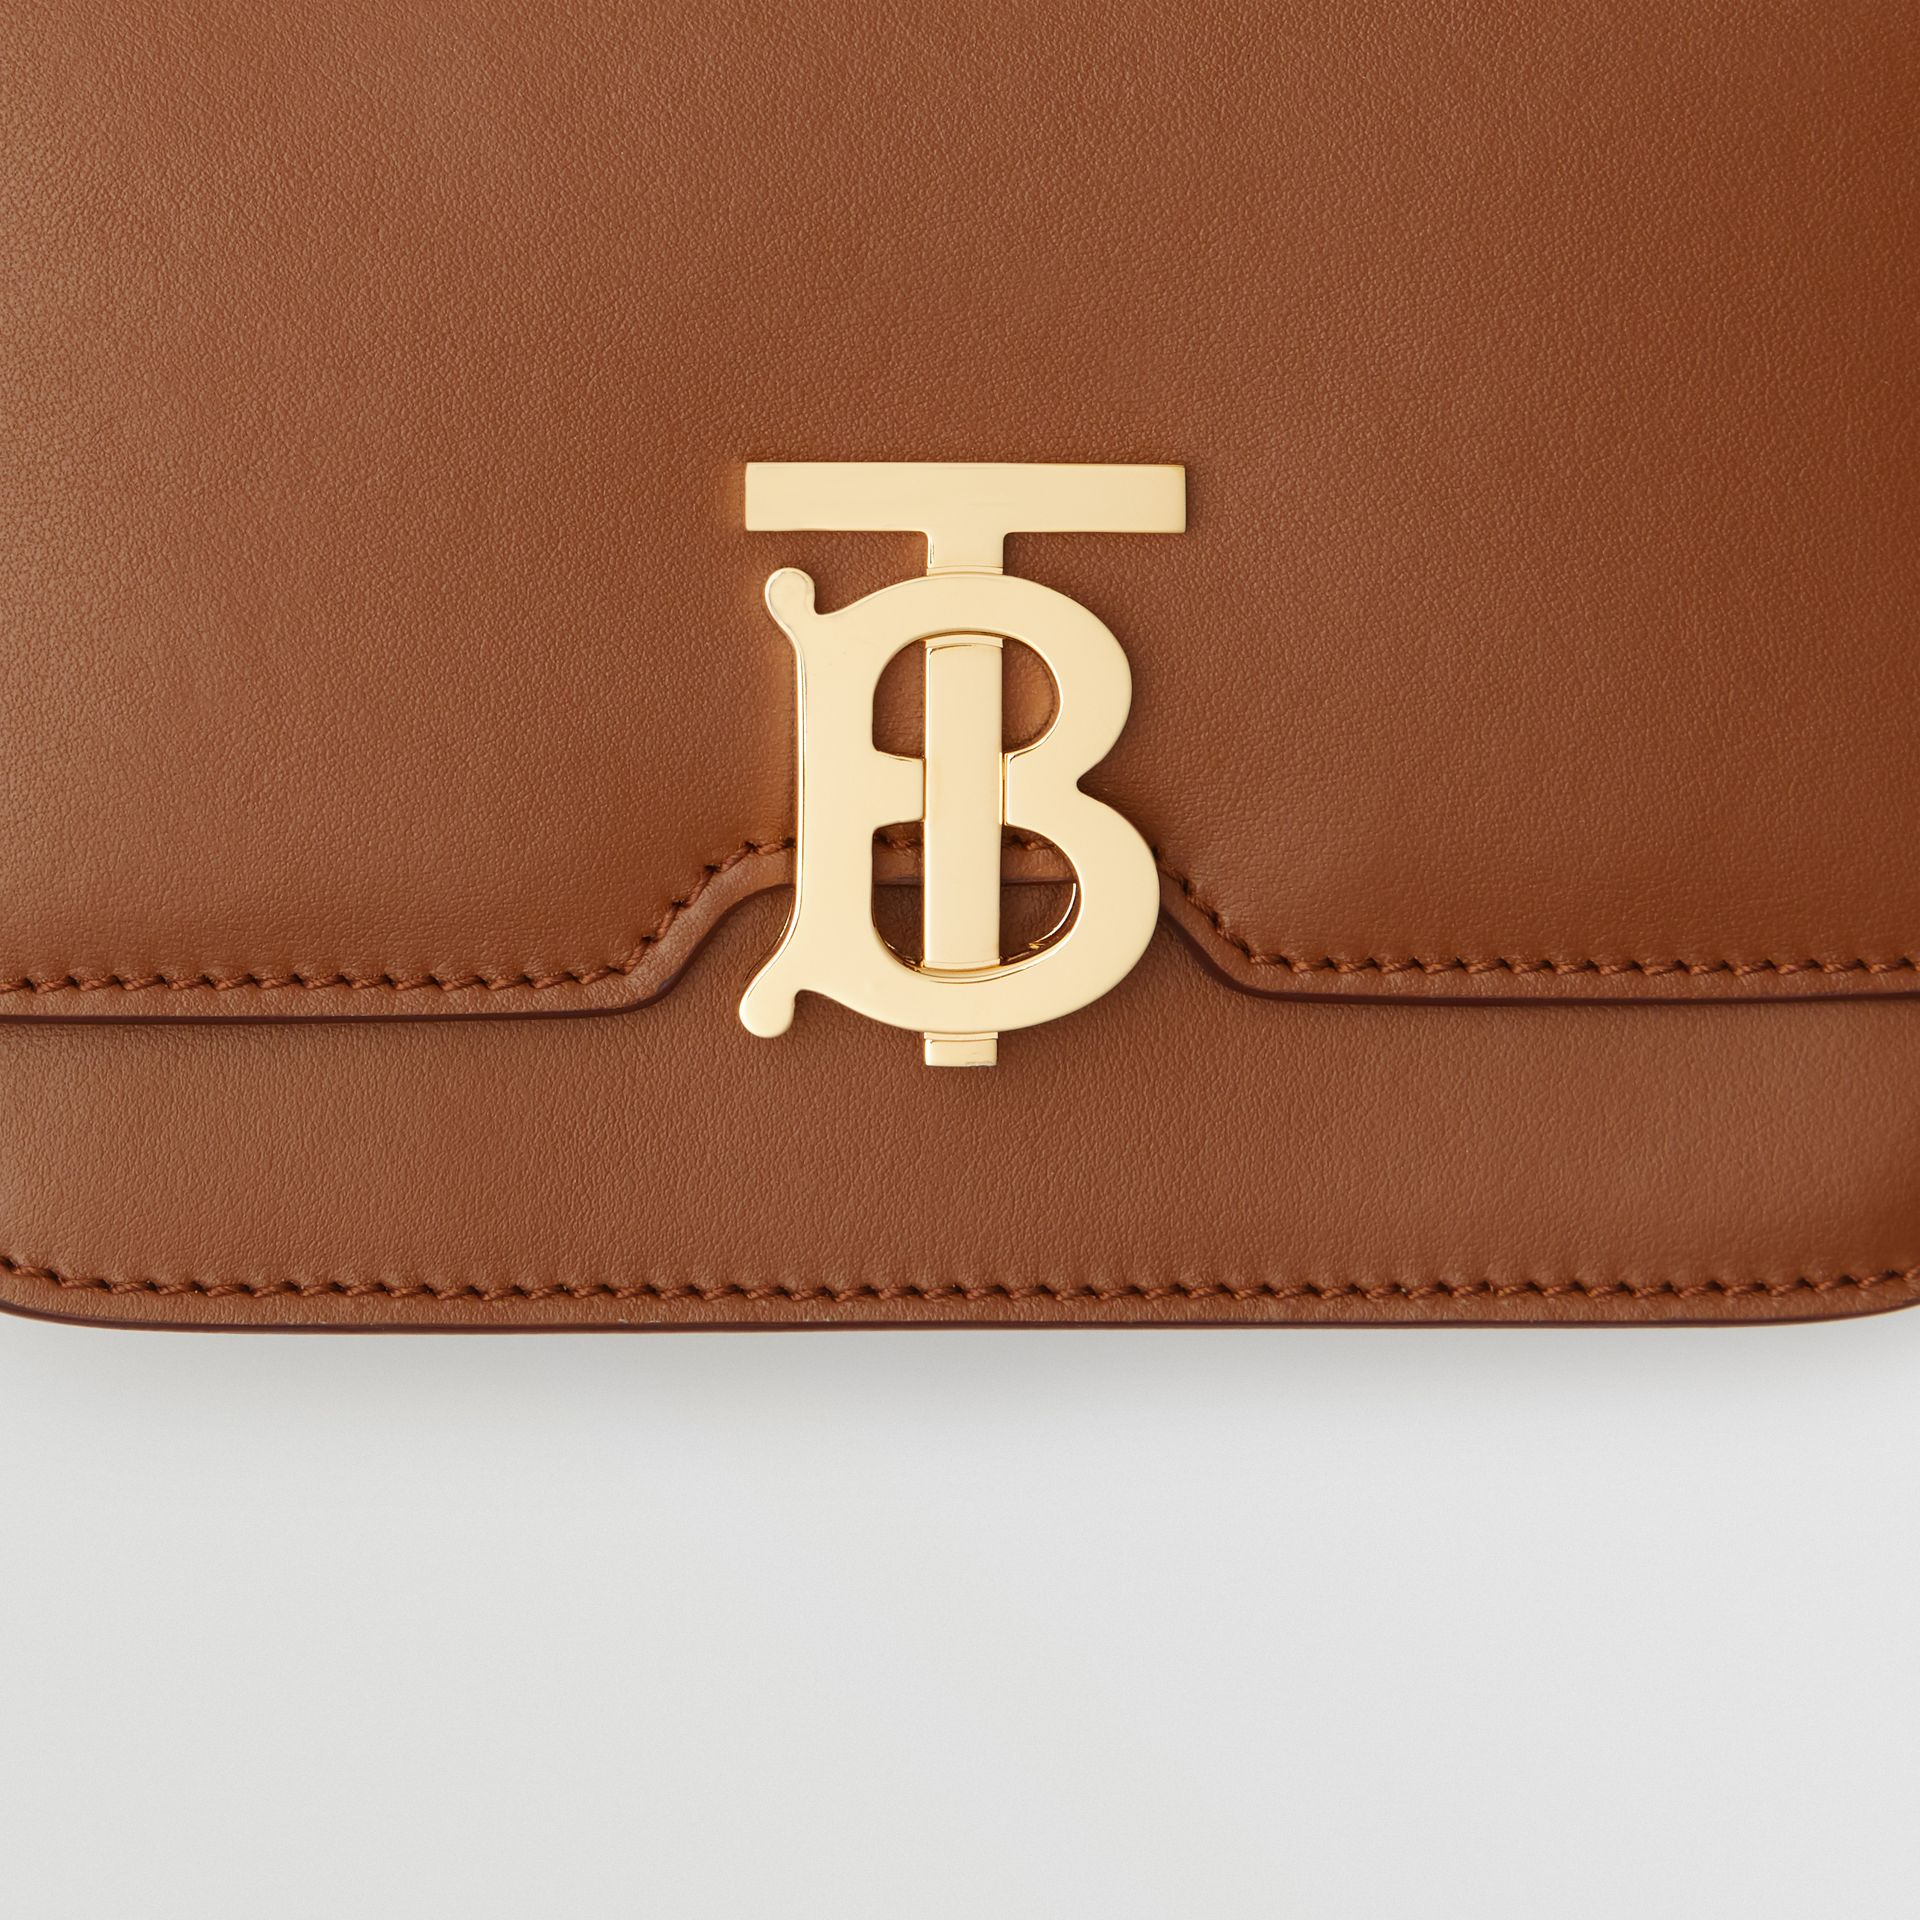 Belted Leather TB Bag in Malt Brown - Women | Burberry Australia - gallery image 8